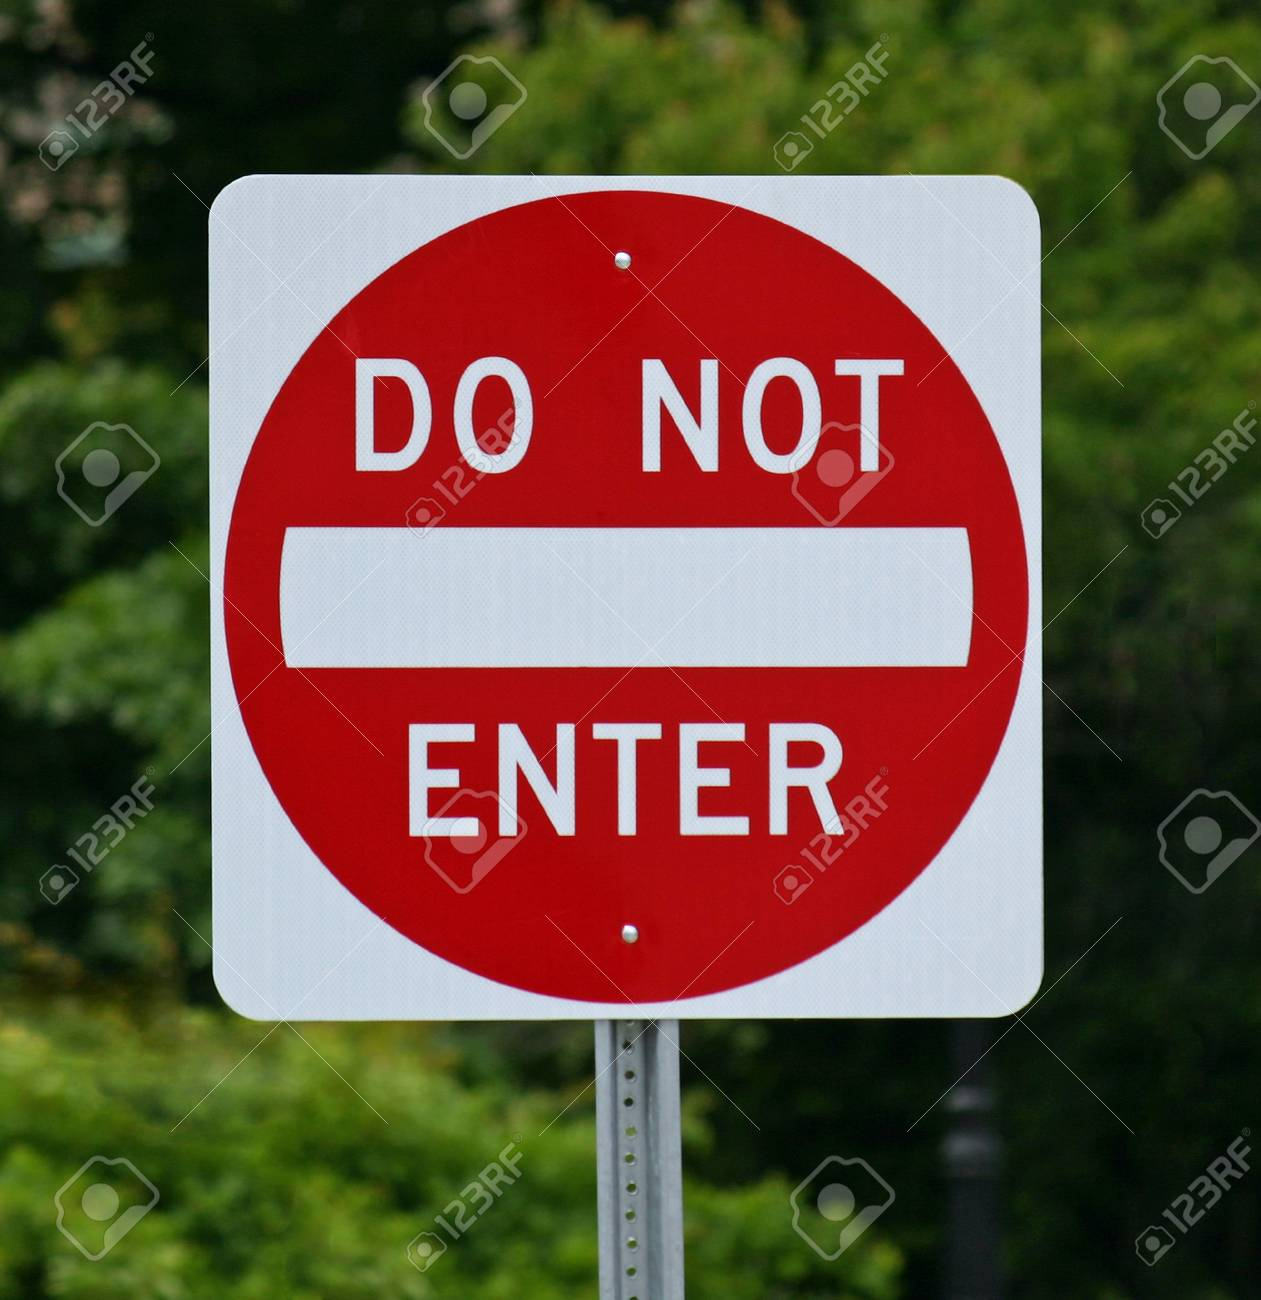 A Do Not Enter sign against a background of trees Stock Photo - 14410524